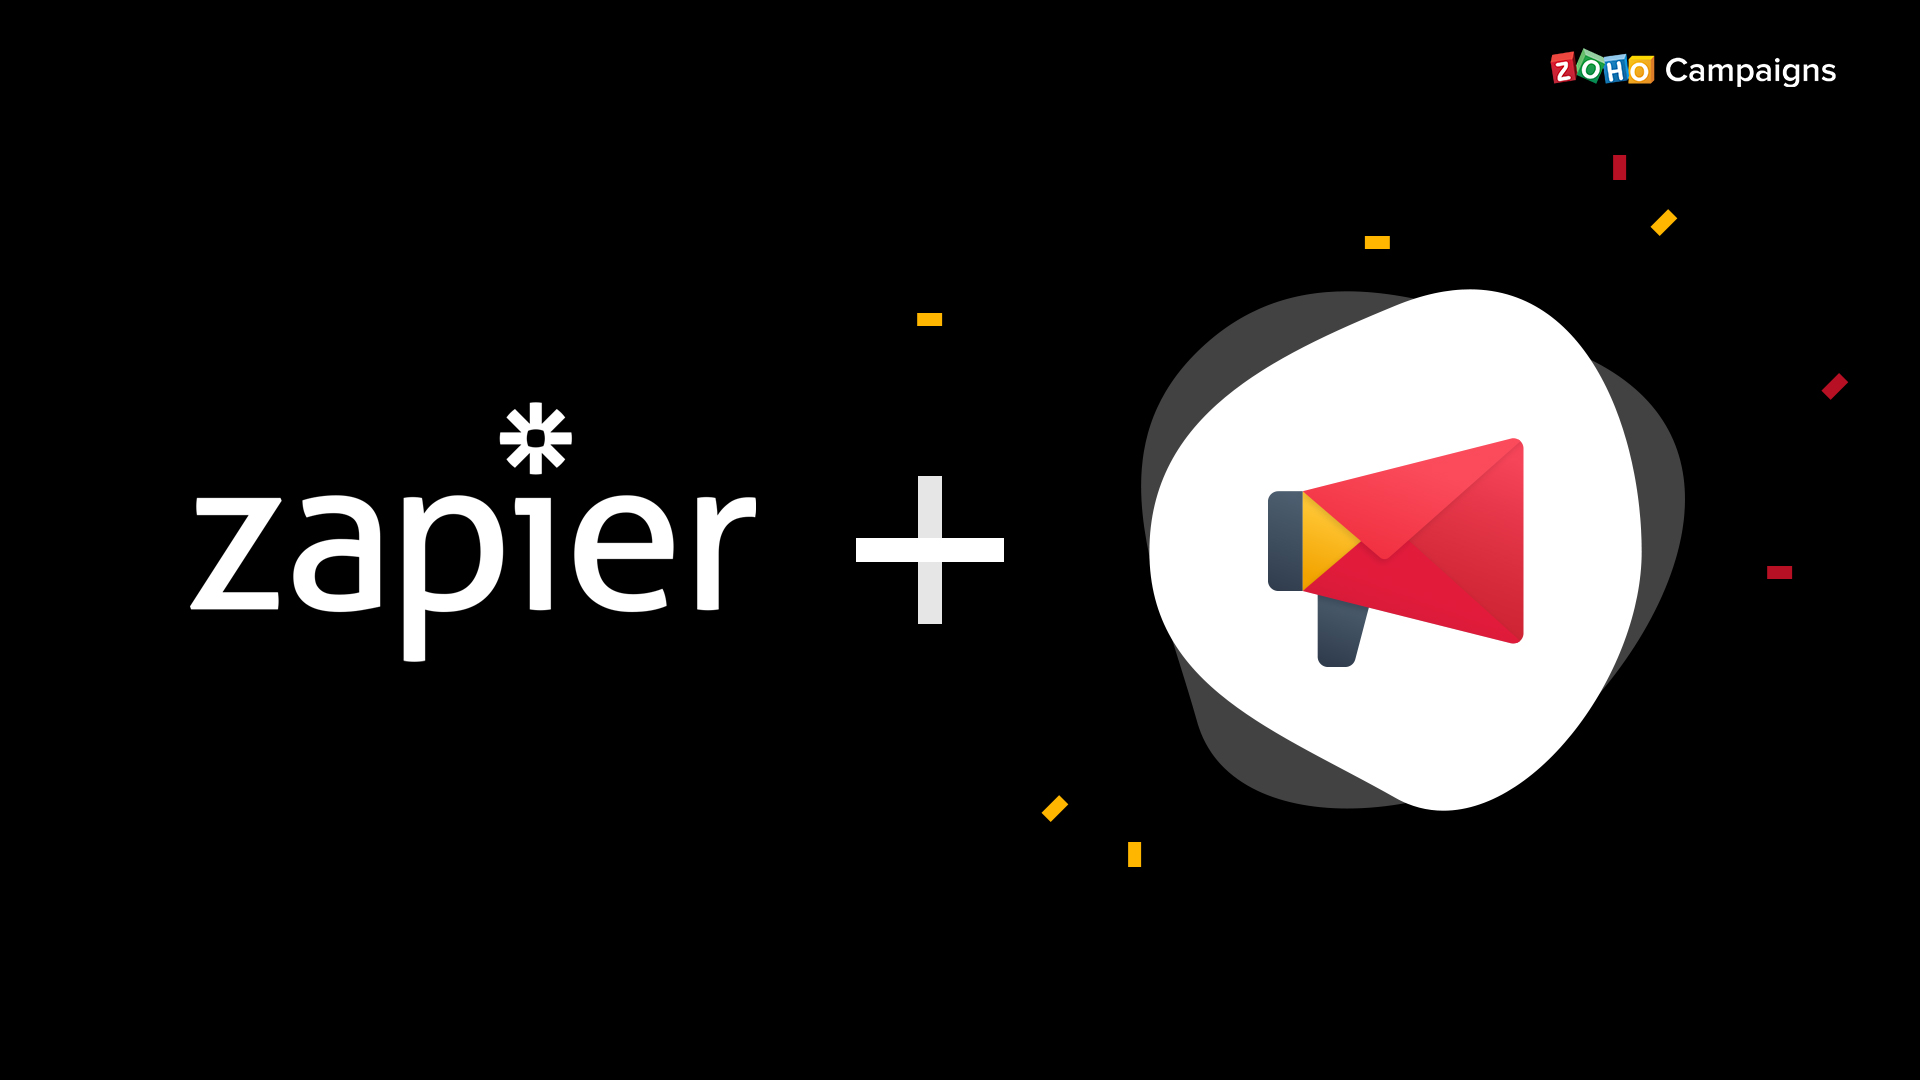 Announcing Zoho Campaigns' integration with Zapier